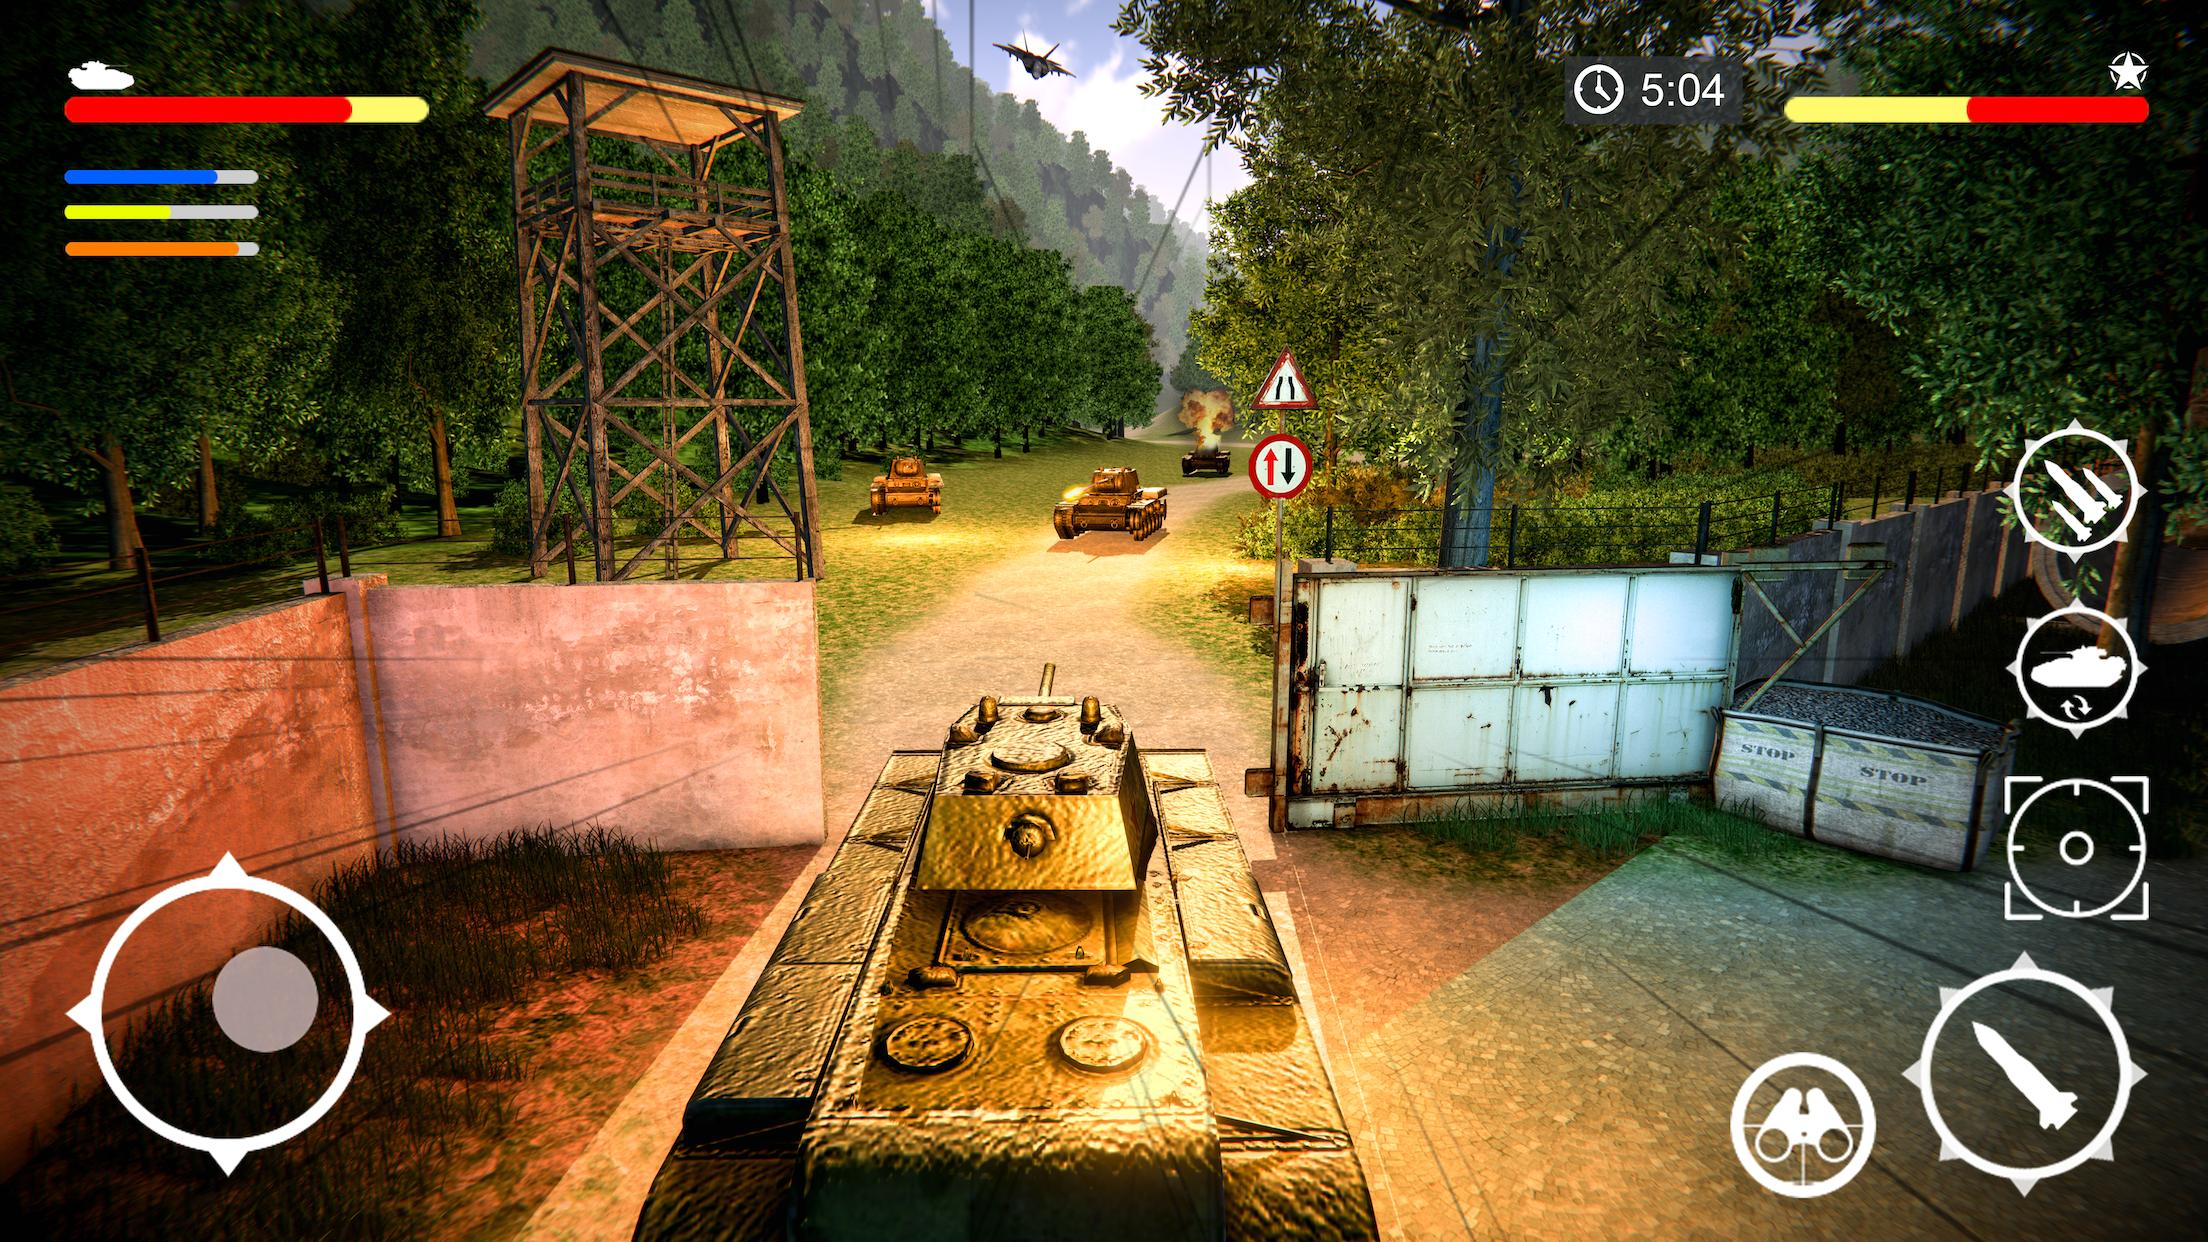 Tank Games 2020 Free Tank Battle Army Combat Games 1.3 Screenshot 1